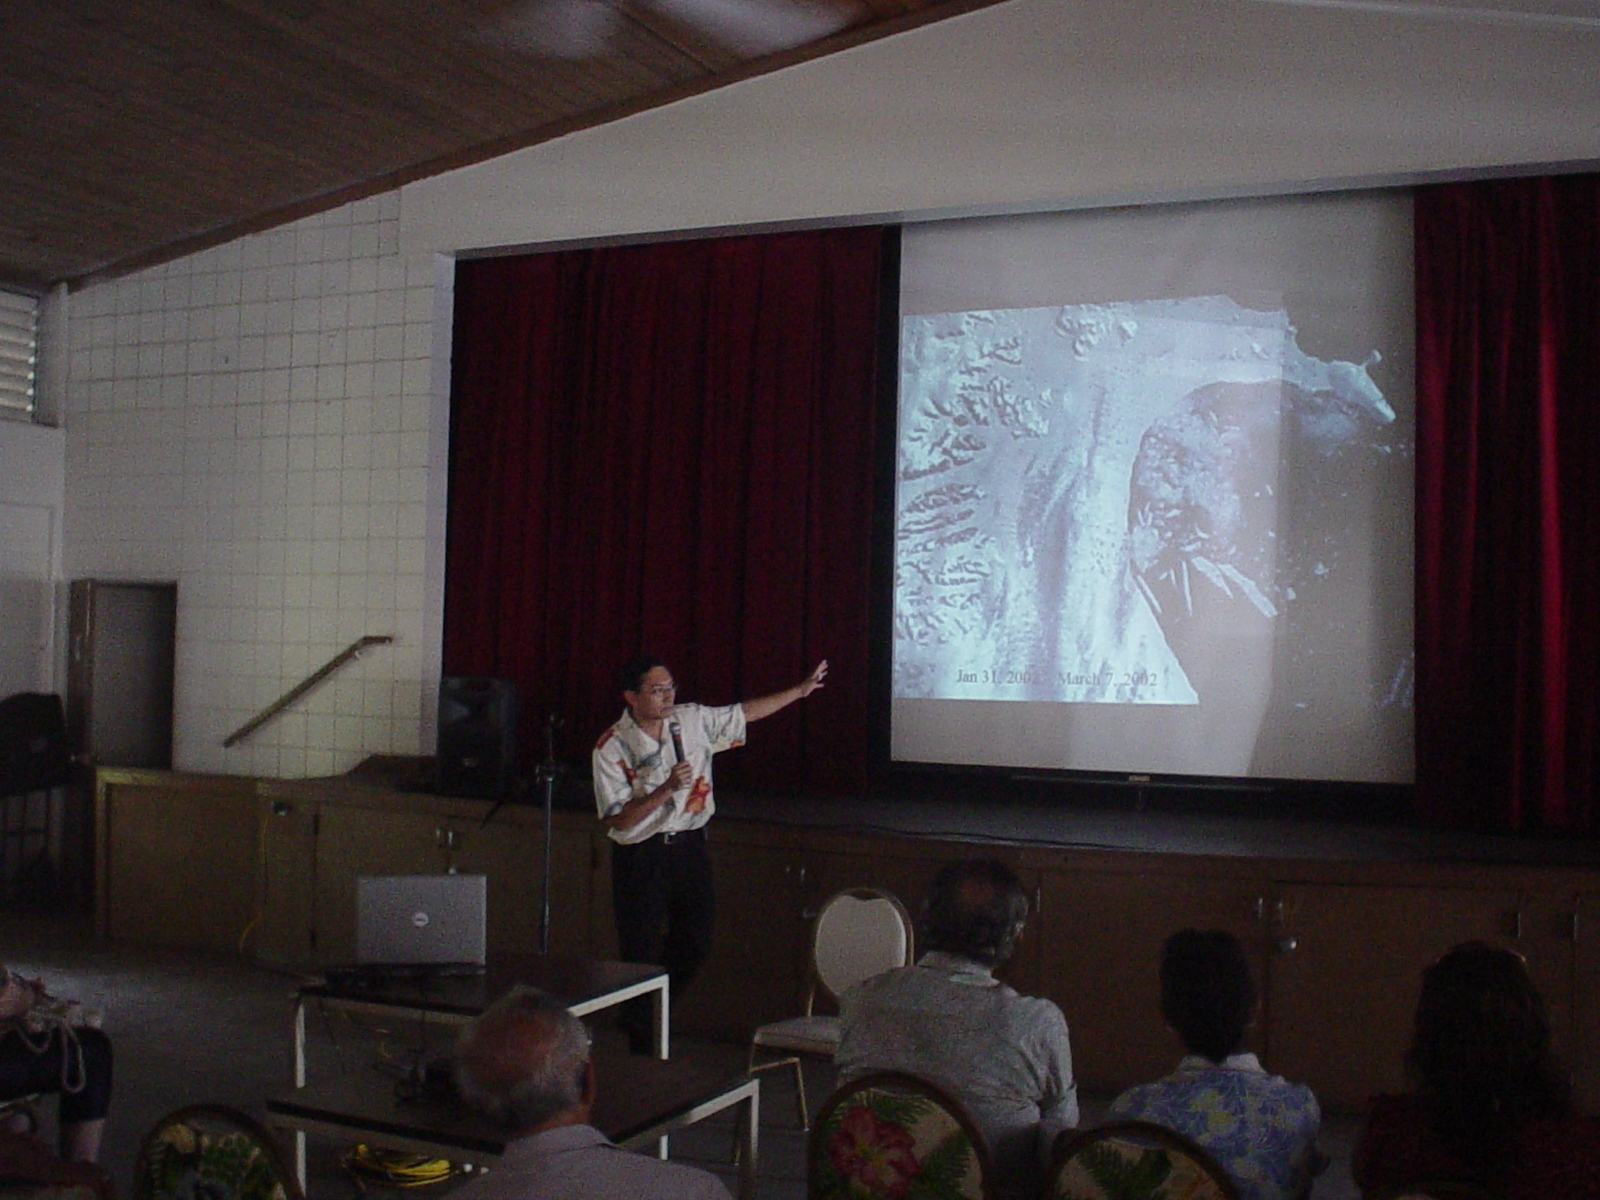 Global Warming Seminar at Waikiki Community Center